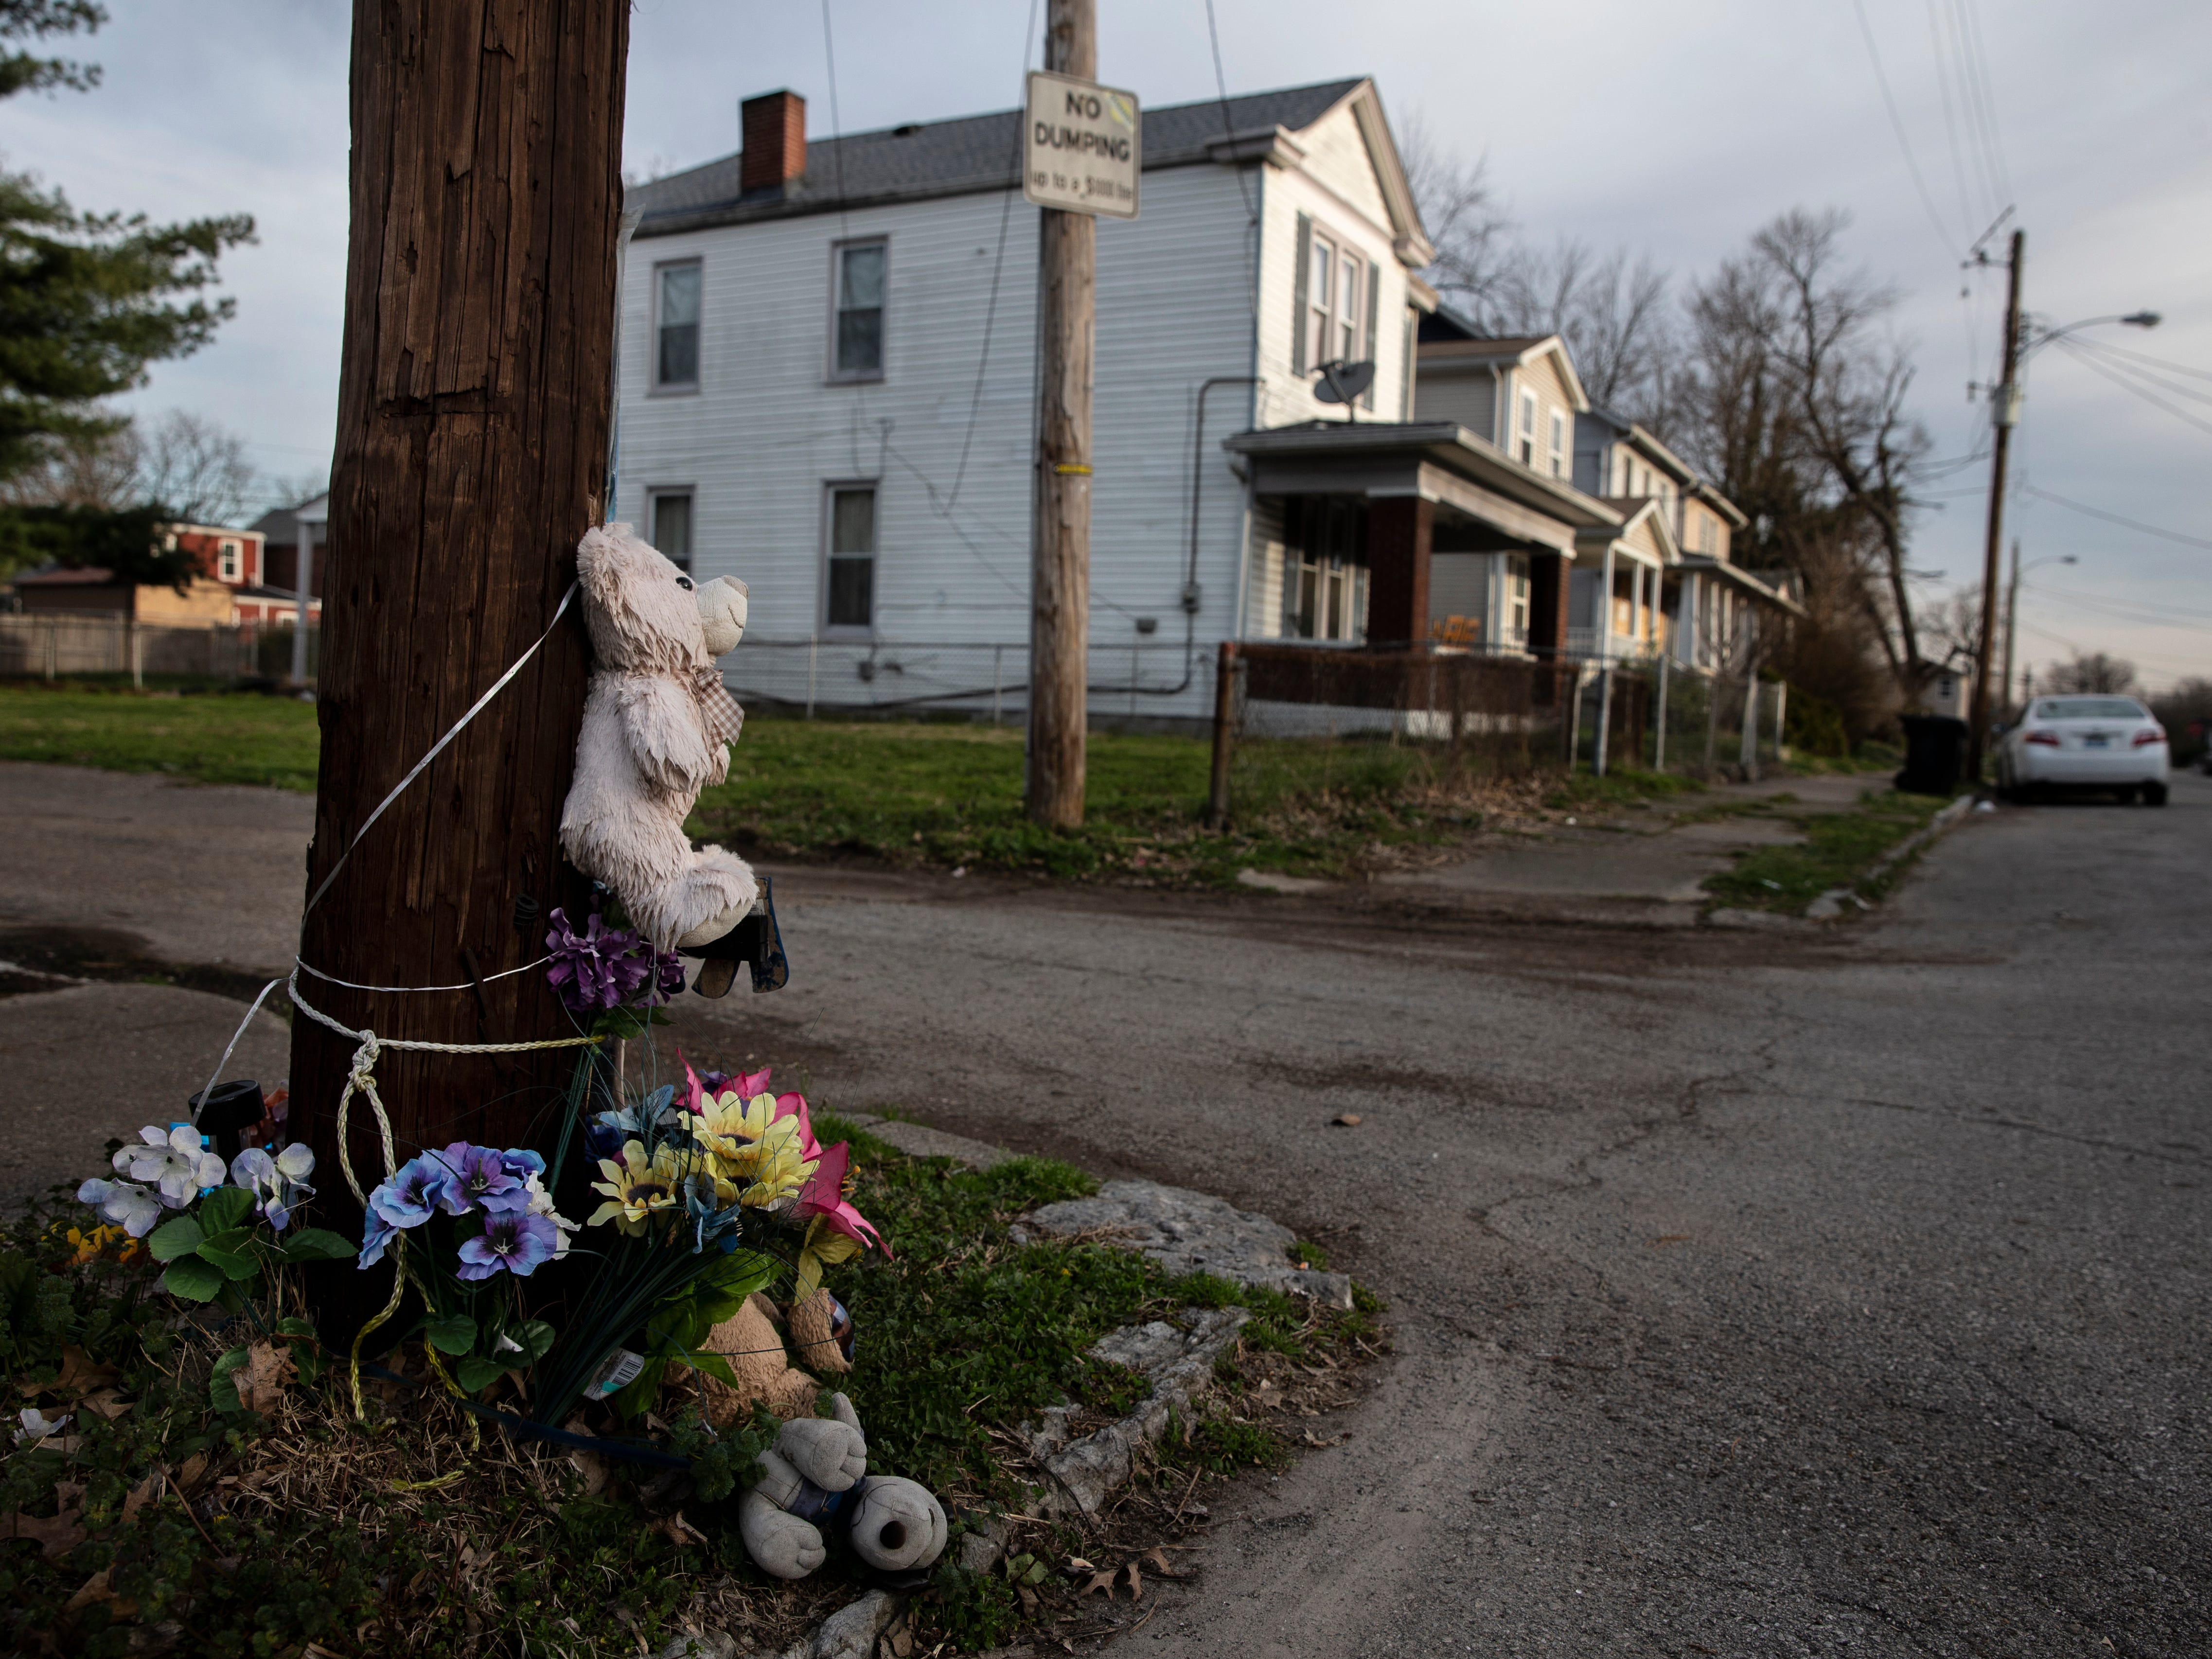 A makeshift memorial for Kontar Dwayne Roberson, 37, who was shot and killed on South 23rd Street near Garland in 2017. April 3, 2019